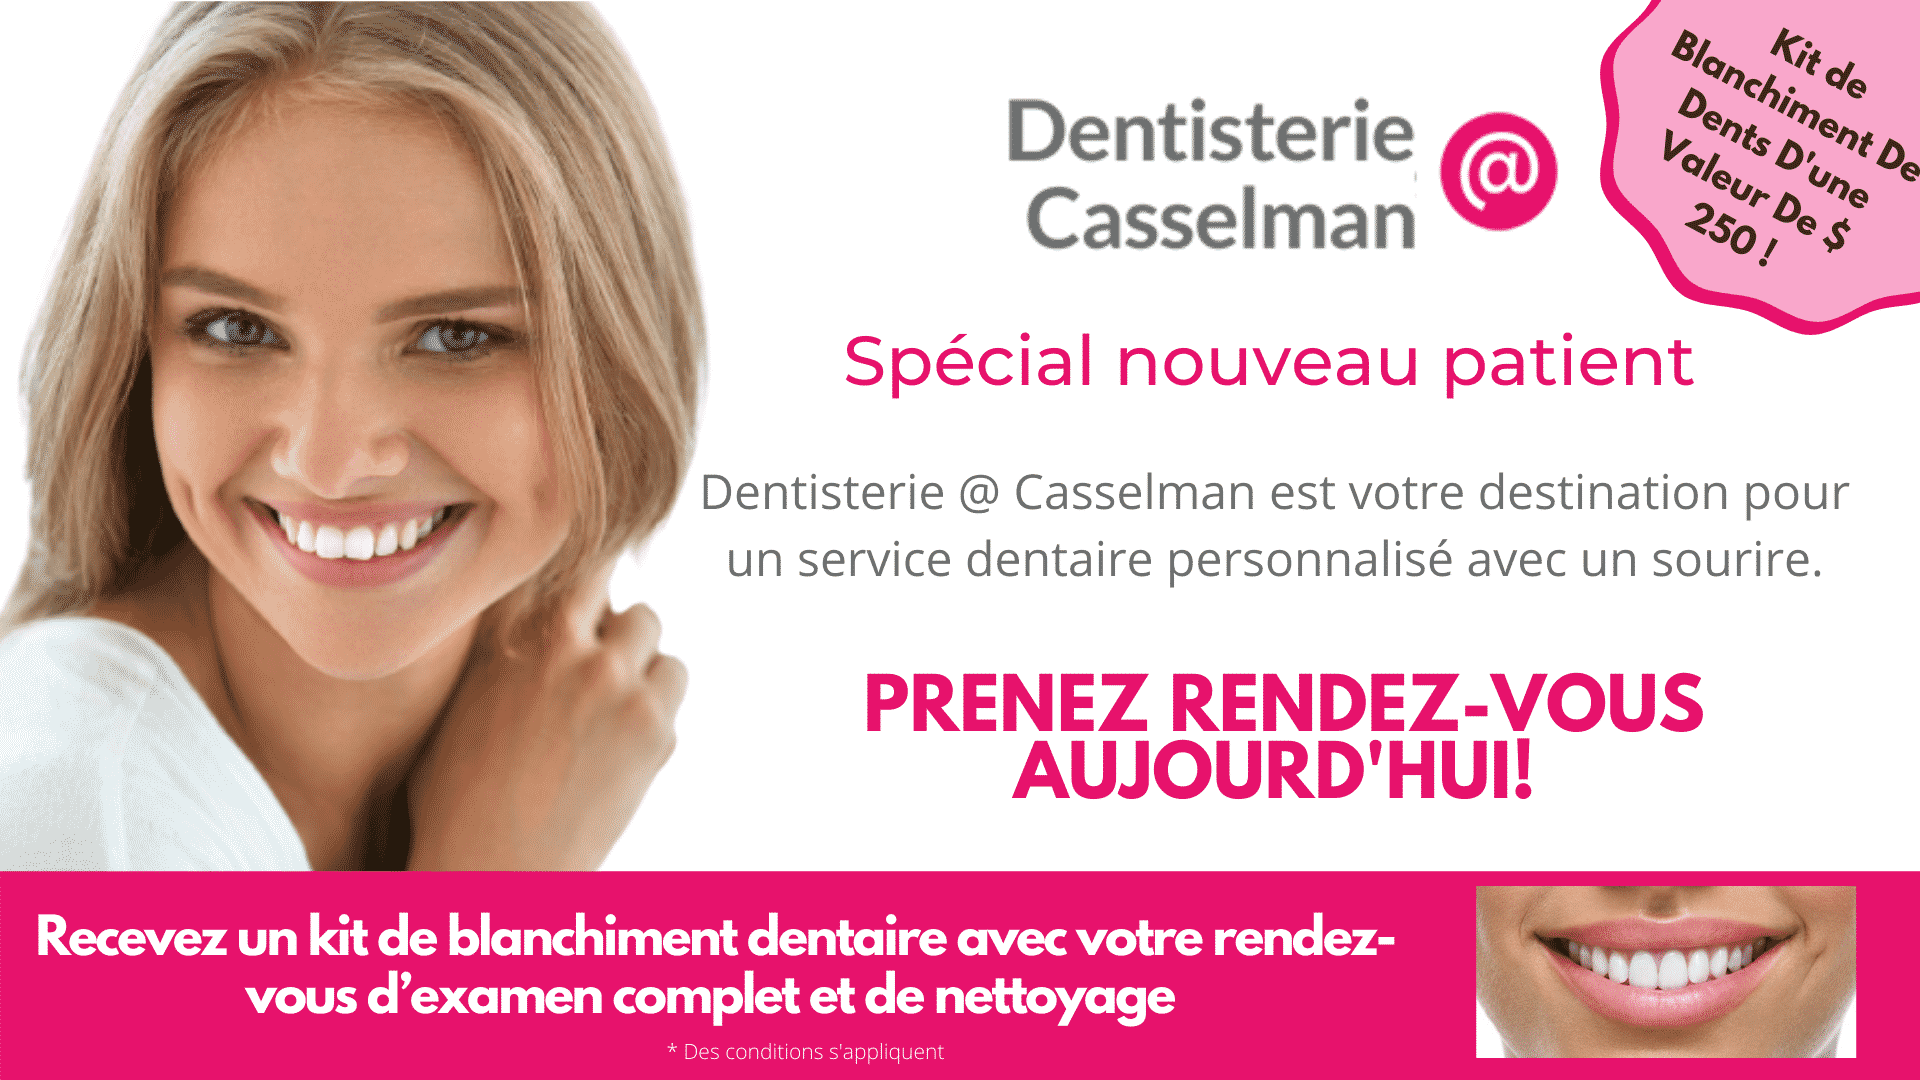 Dentist ad for teeth whitening french no b&a value 250